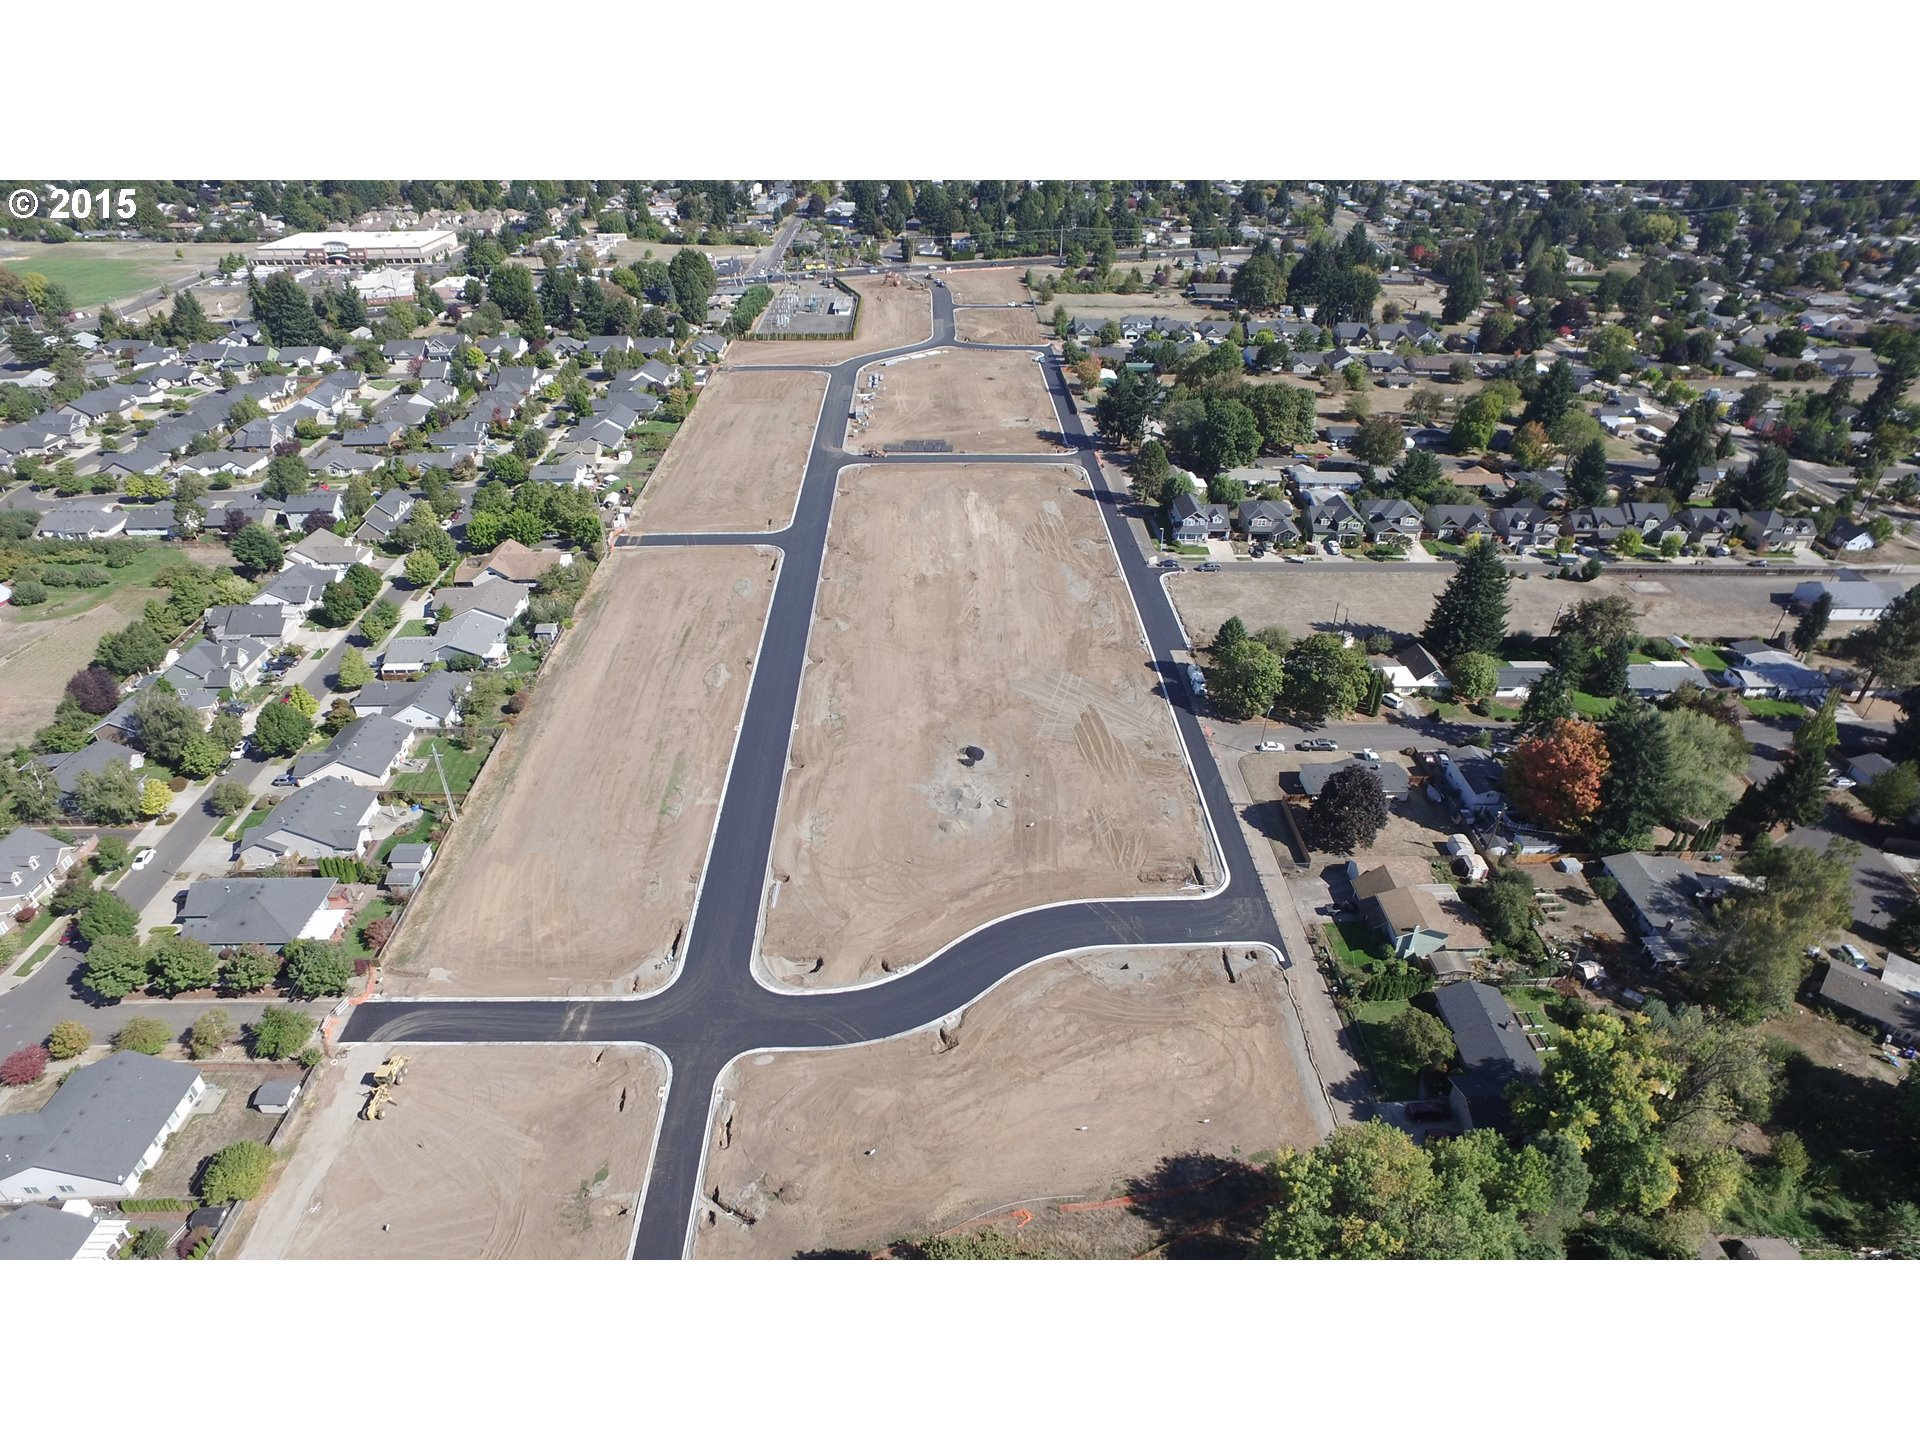 75 W Dean Lot 7, Eugene, OR 97404